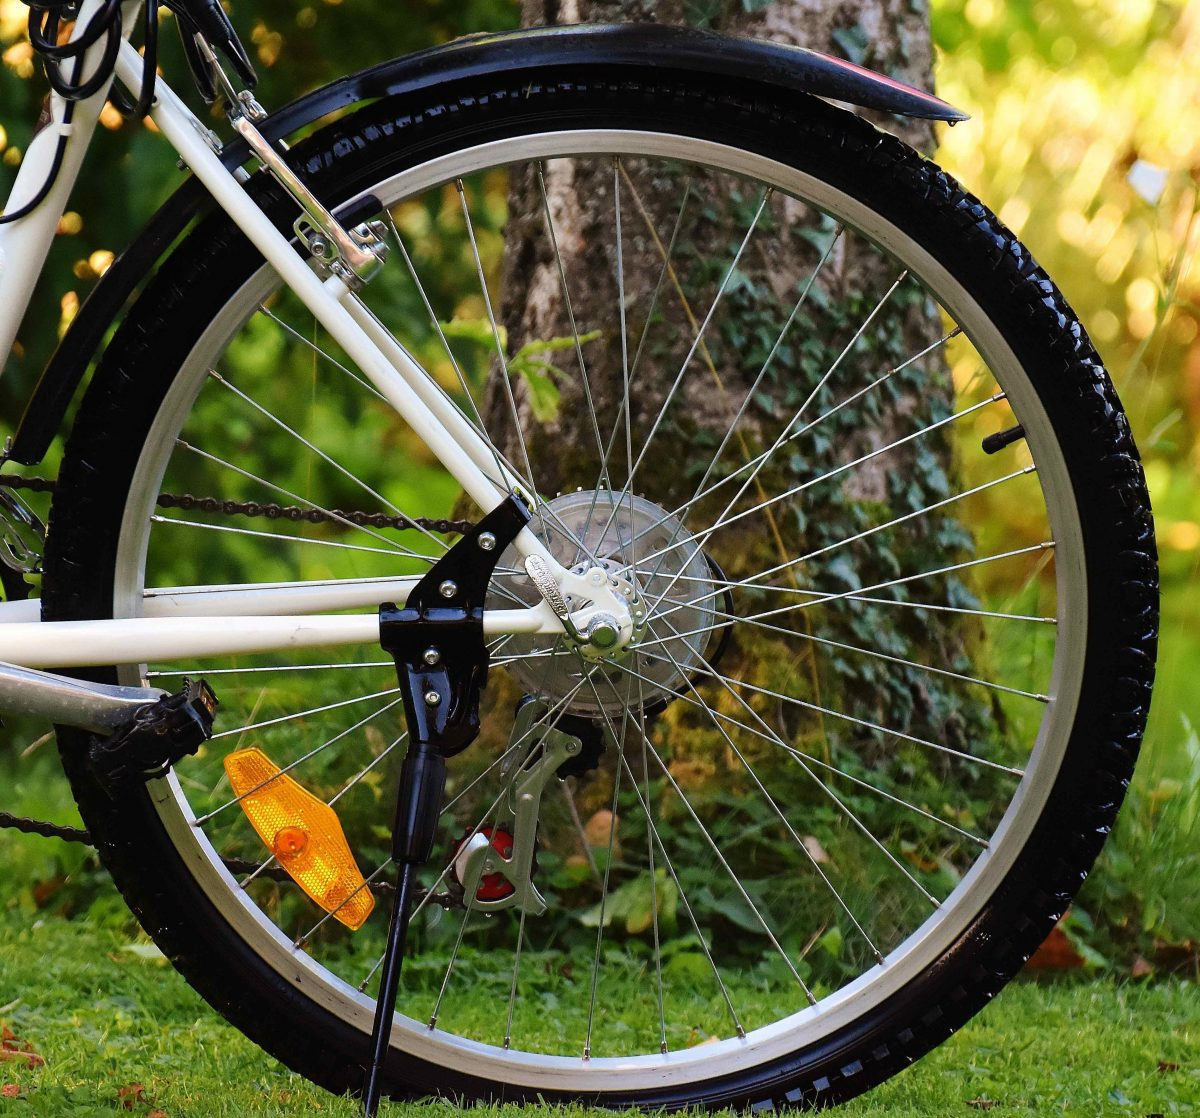 How to Measure a Bicycle Wheel How to Measure a Bicycle Wheel new images